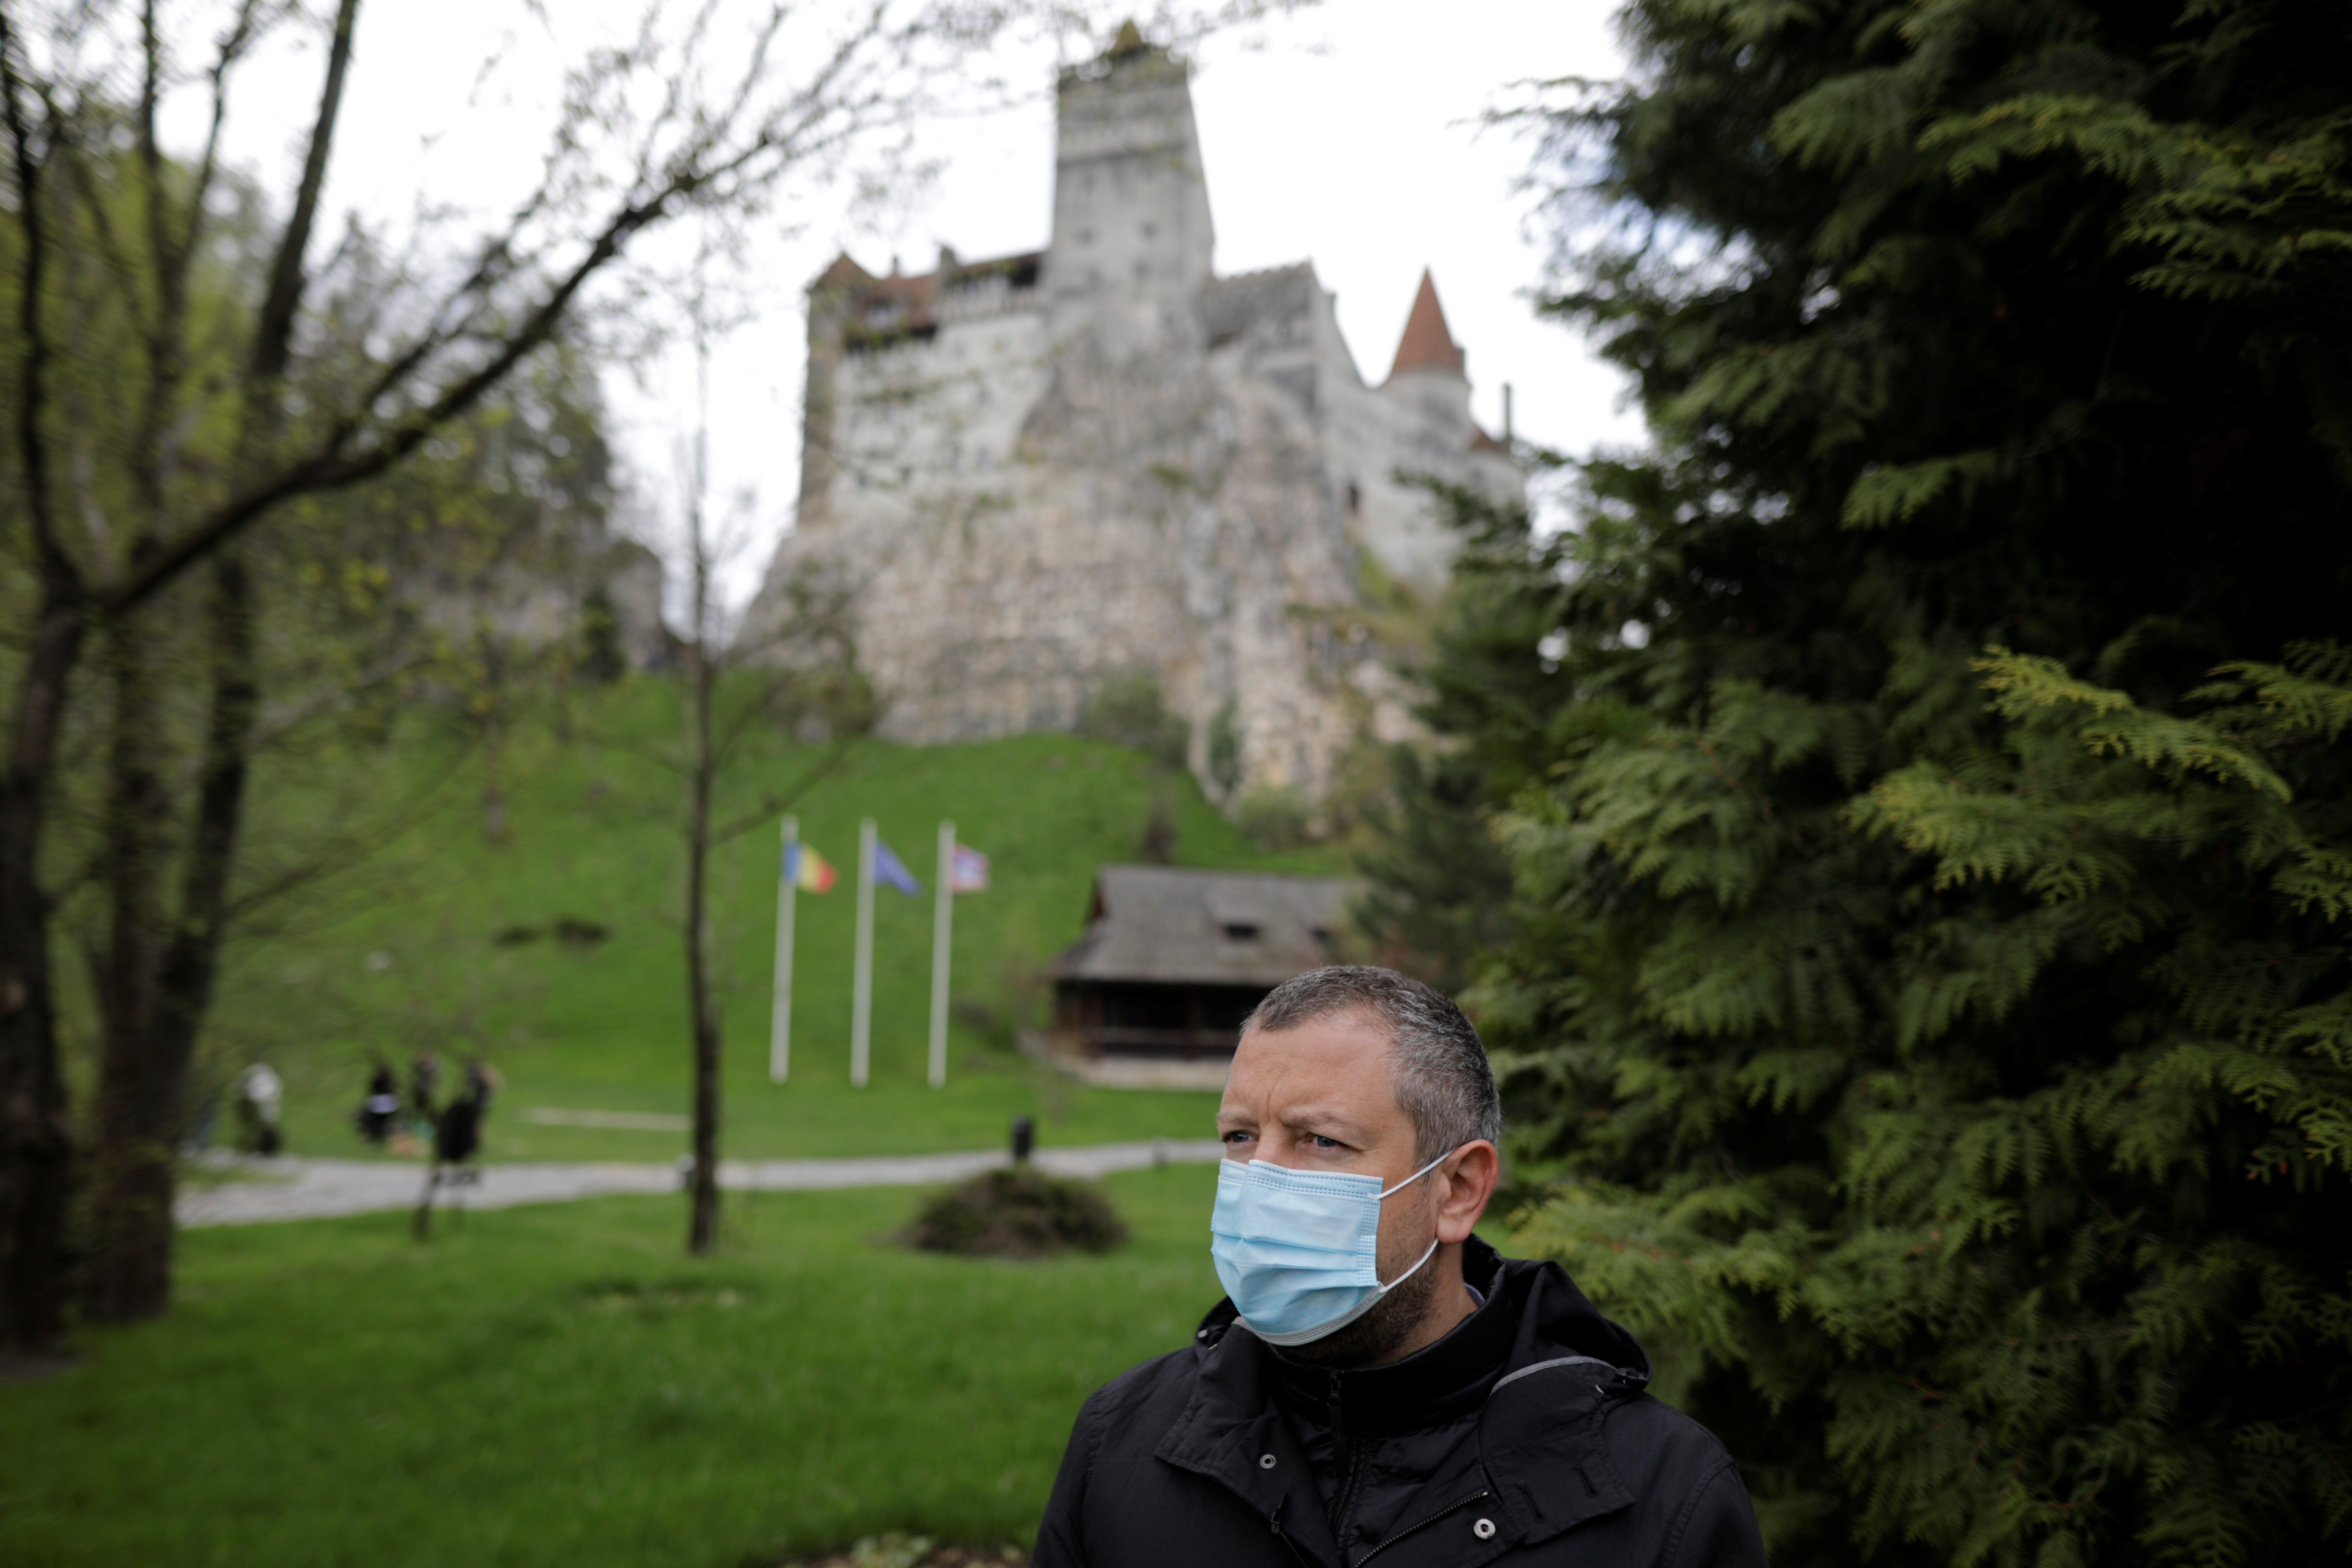 Alexandru Priscu, Bran Castle's marketing director, looks on during interview with Reuters reporter, in Brasov county, Romania, May 8, 2021. Inquam Photos/George Calin via REUTERS